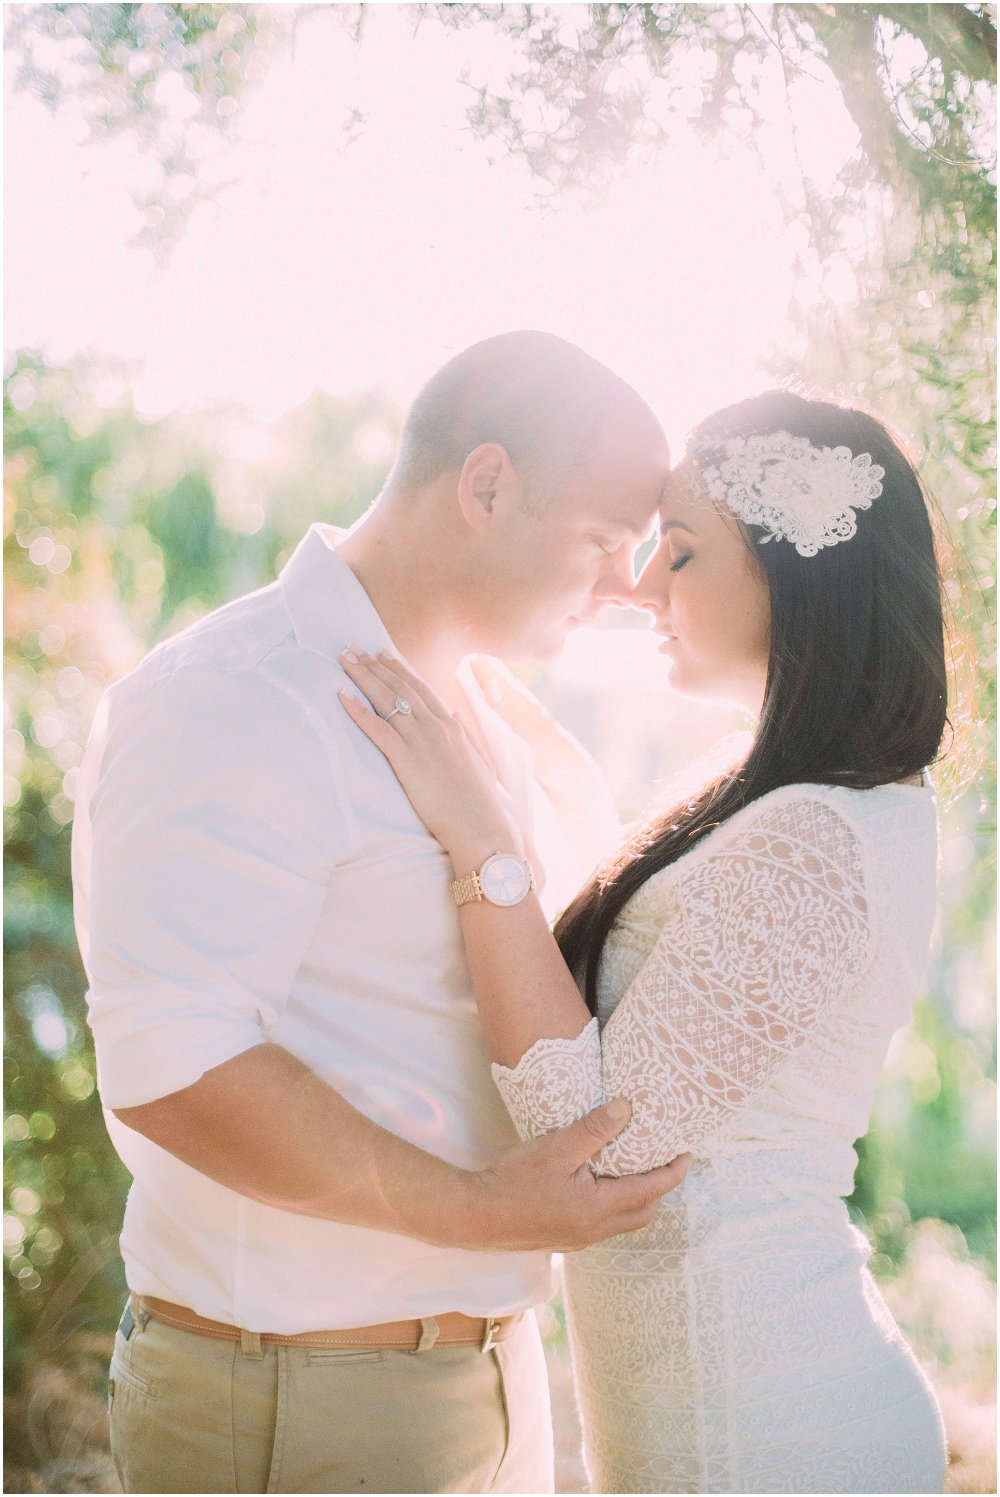 Ronel Kruger Cape Town Wedding and Lifestyle Photographer_3883.jpg